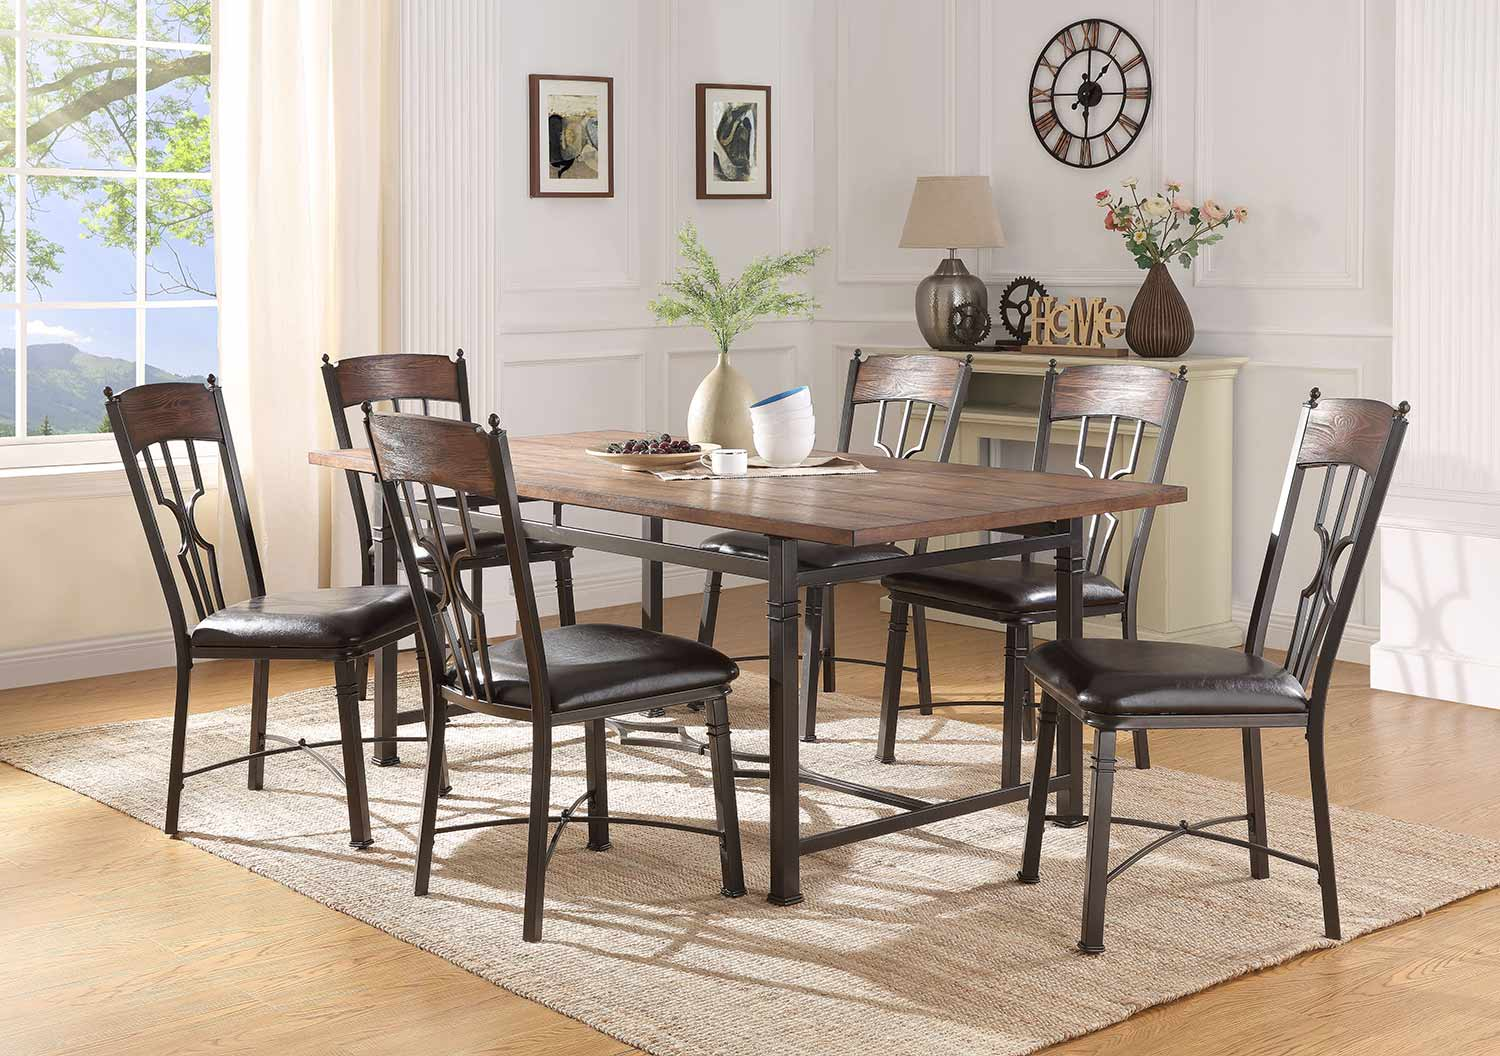 Acme LynLee Dining Set - Weathered Dark Oak/Dark Bronze